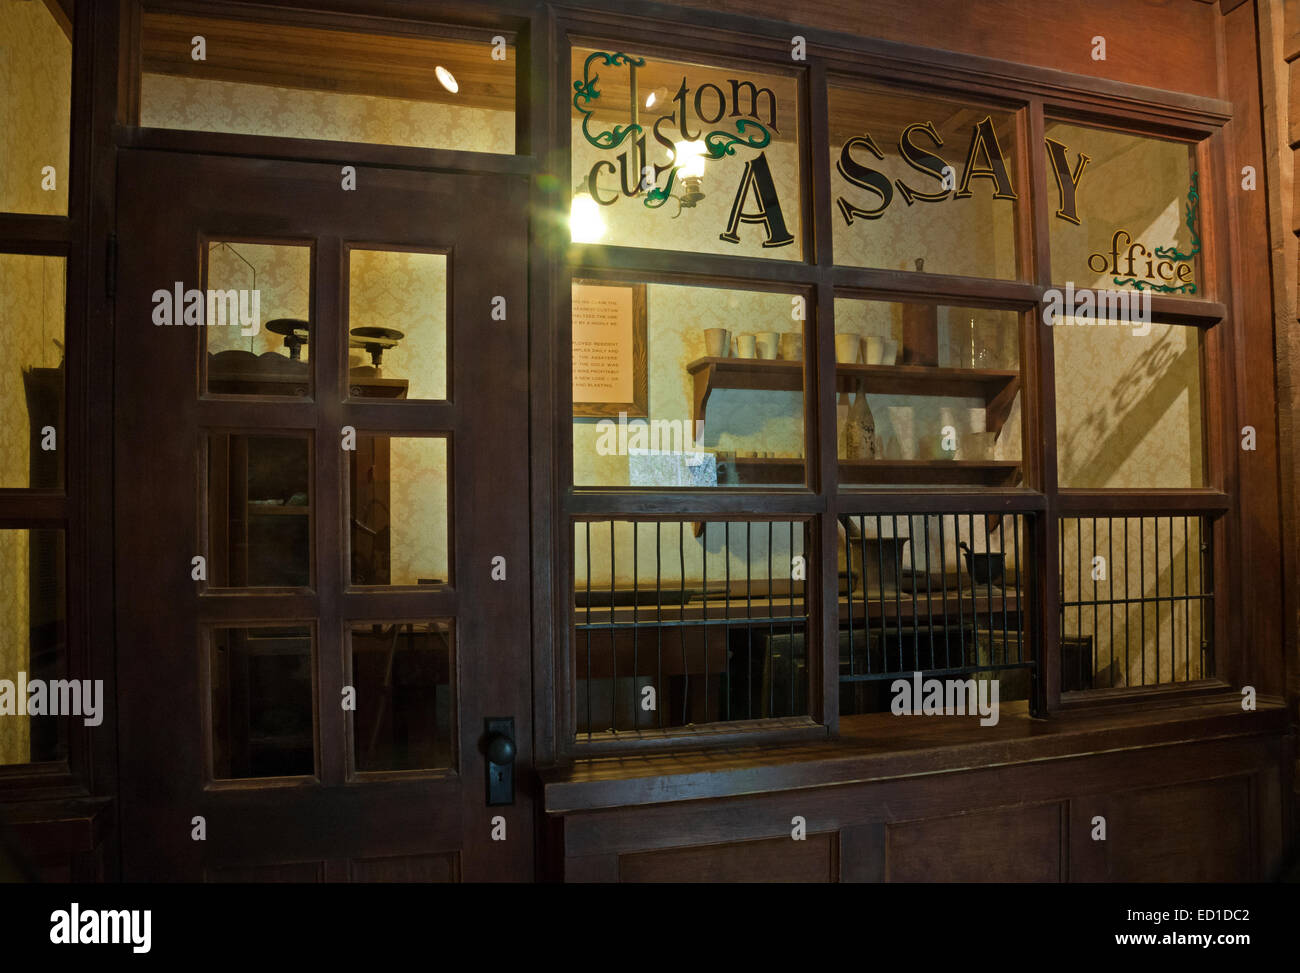 CA02609-00...CALIFORNIA - Old Assay Office exhibit at the Marshall Gold Discovery State Historic Park. - Stock Image